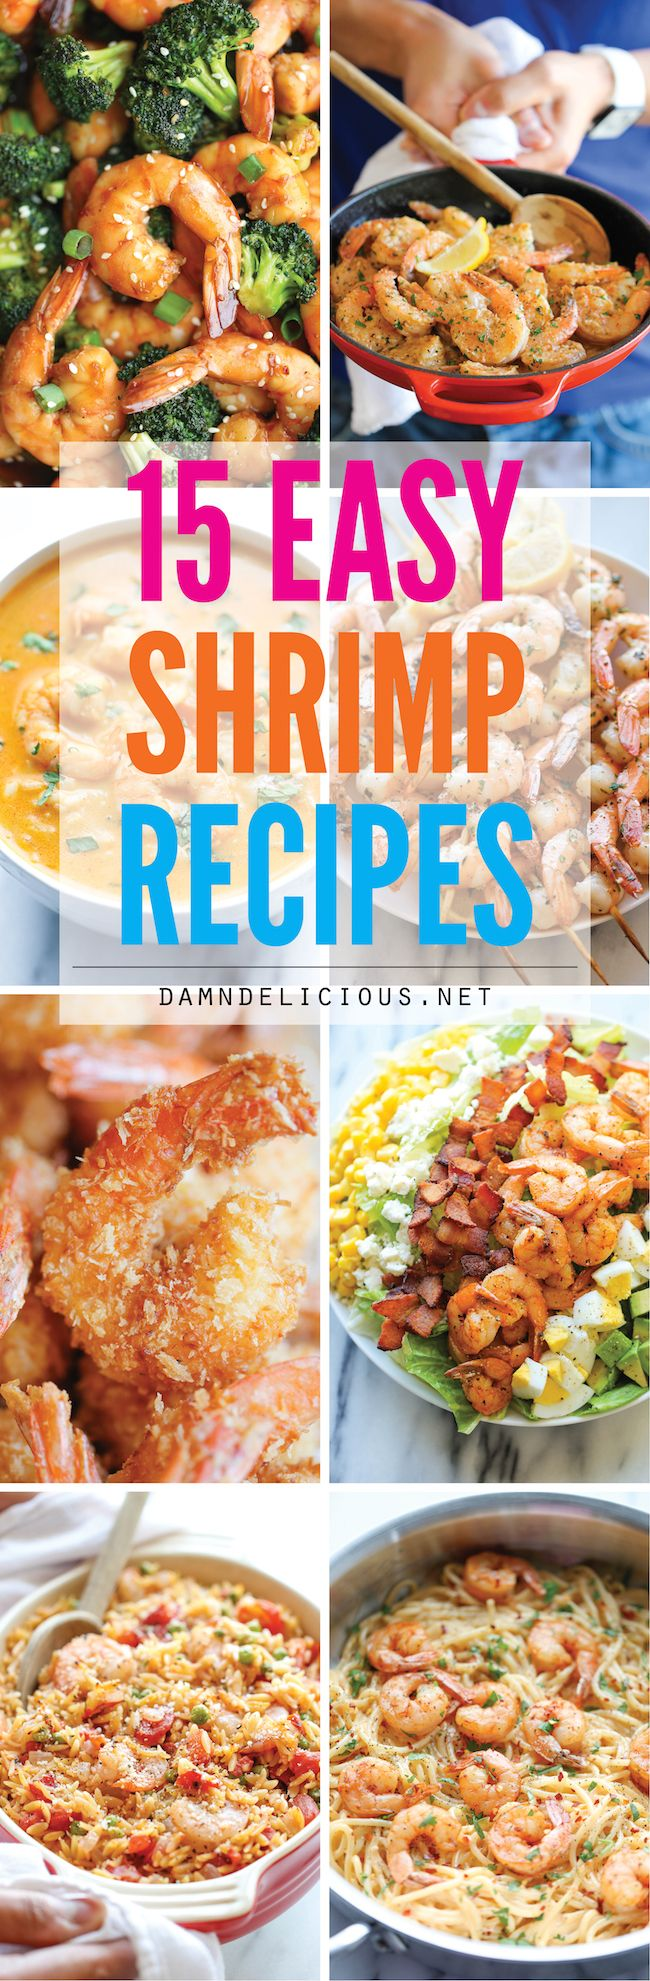 15 Easy Shrimp Recipes